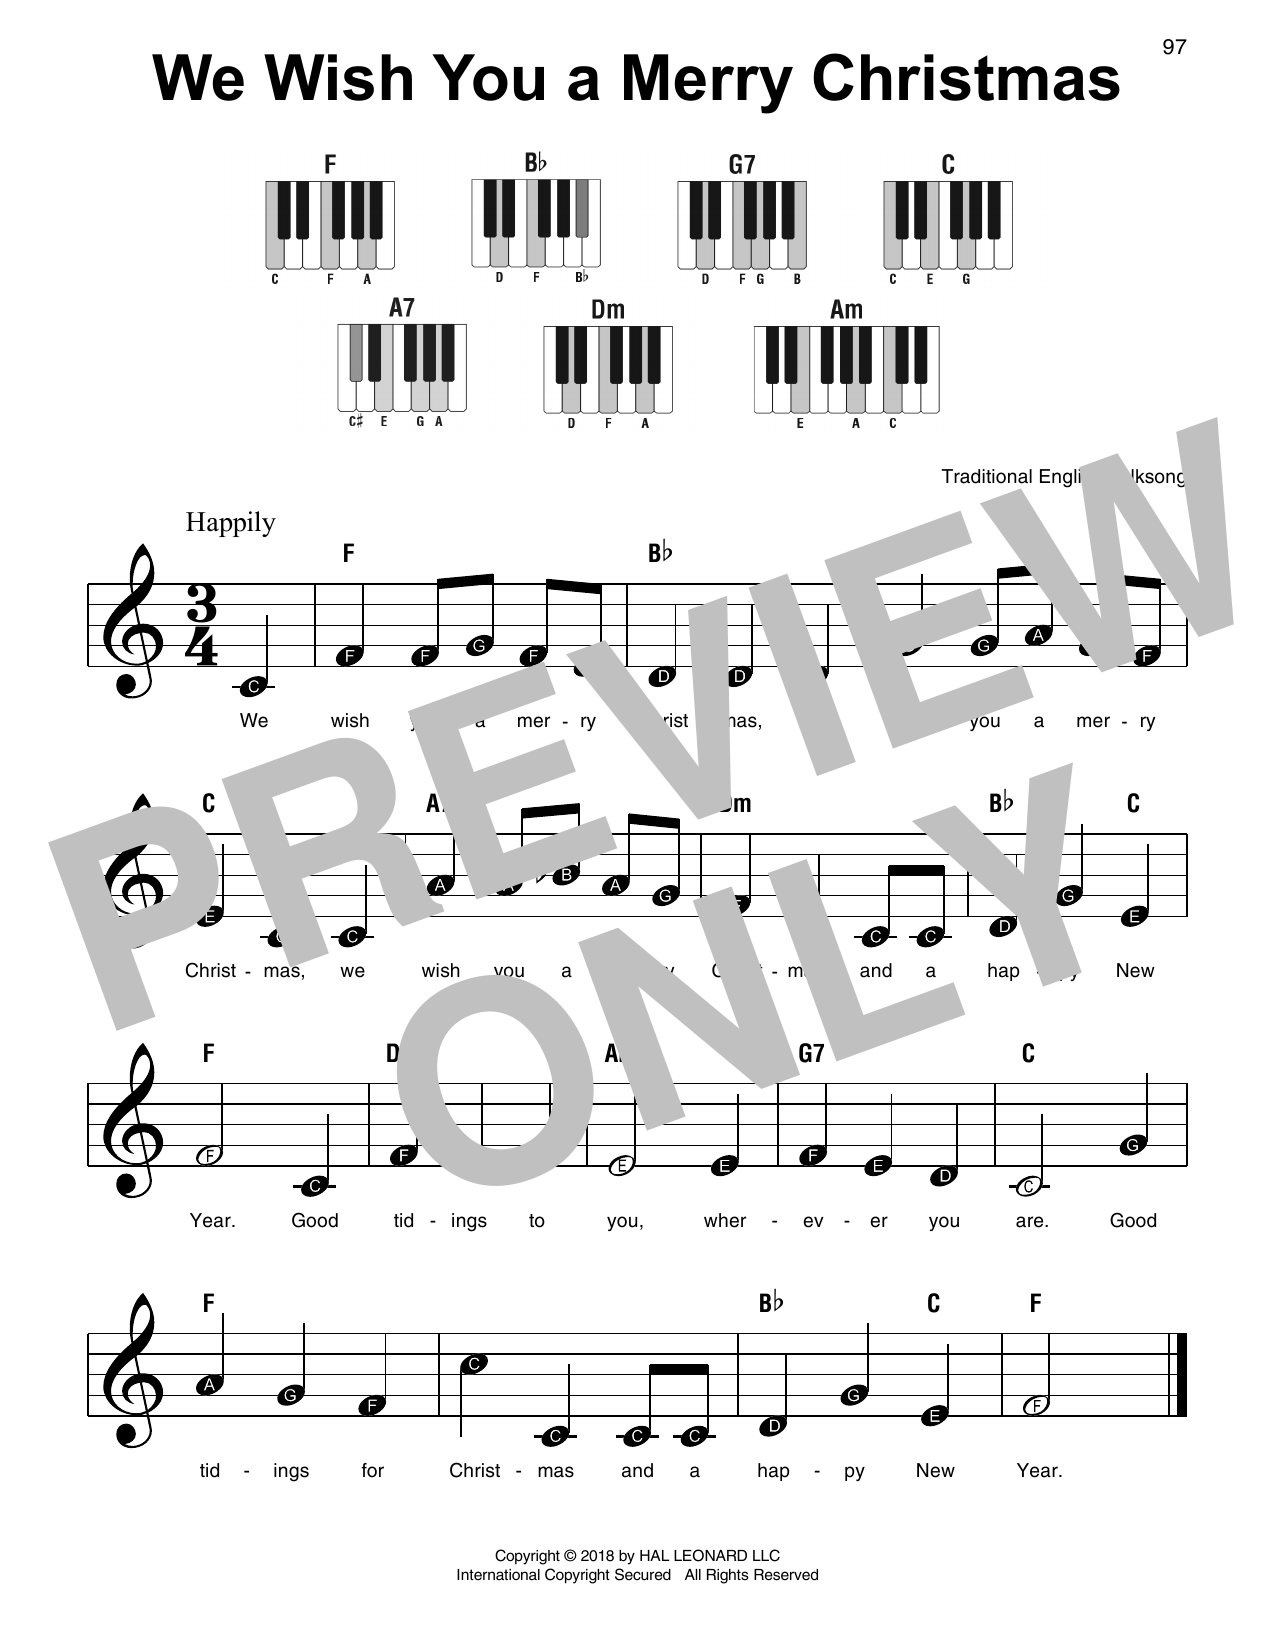 Christmas Carol We Wish You A Merry Christmas sheet music notes and chords